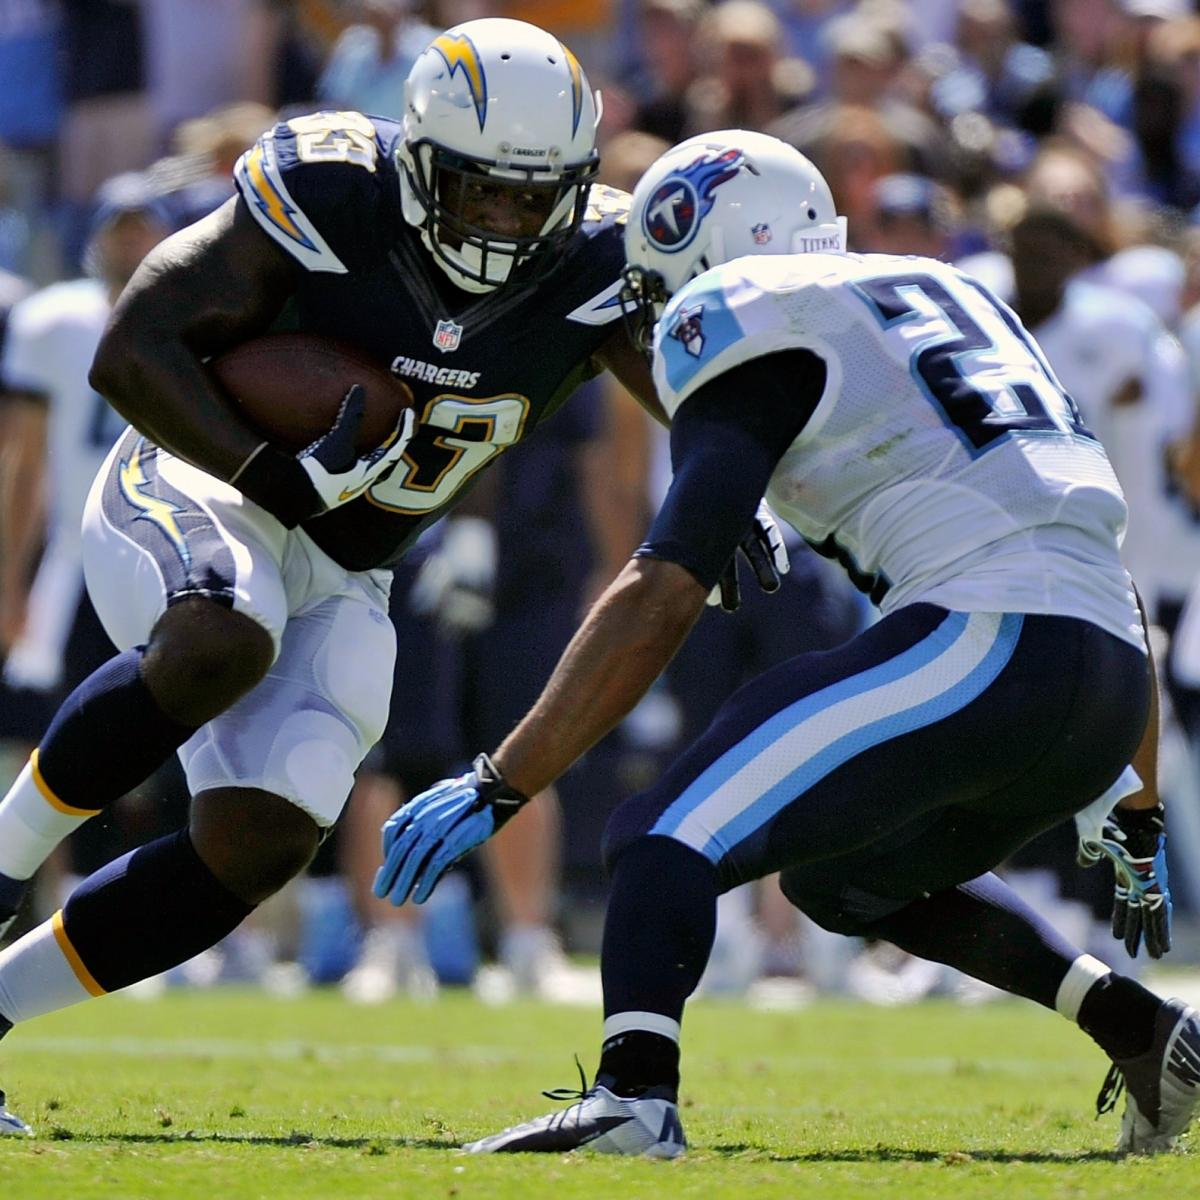 San Diego Chargers Game Results: Chargers Vs. Titans: Takeaways From San Diego's 20-17 Loss